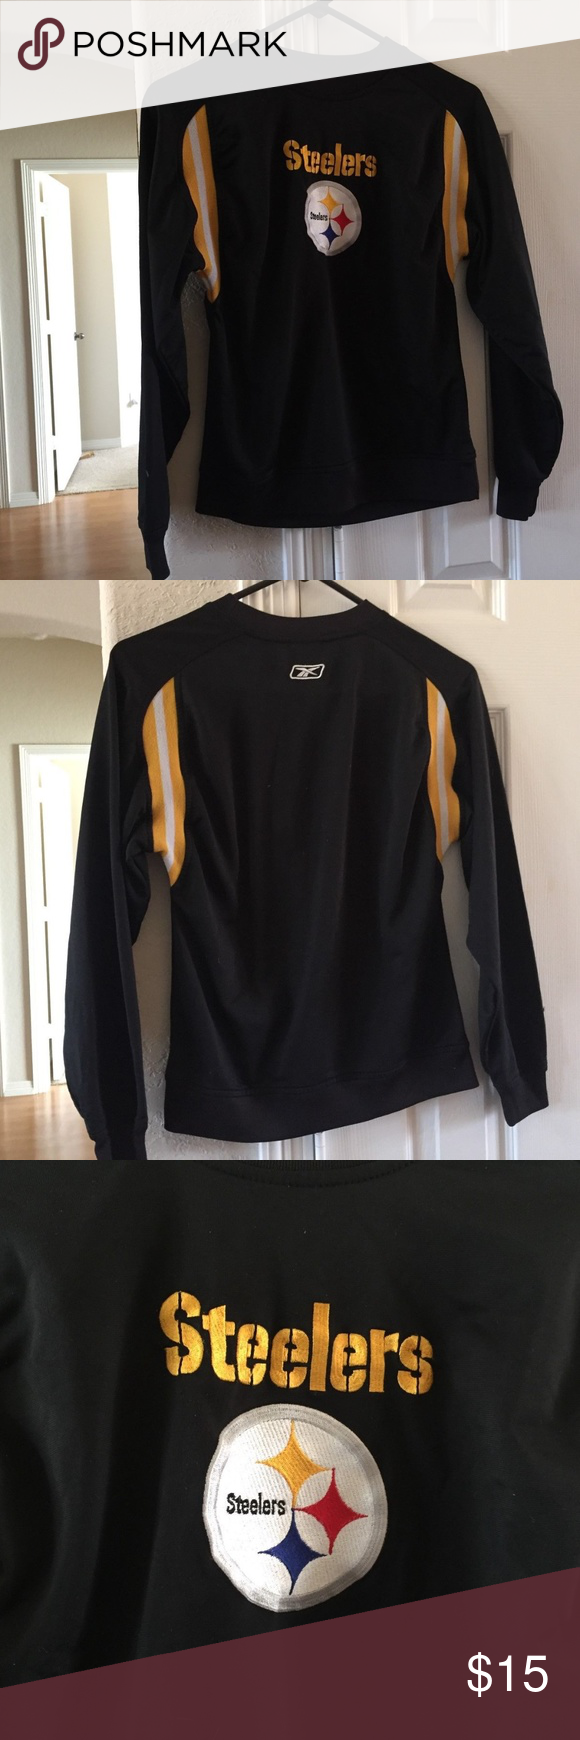 """df83b5846 Youth Reebok NFL Pittsburgh Steelers jersey S Condition  Used   """"No rips"""